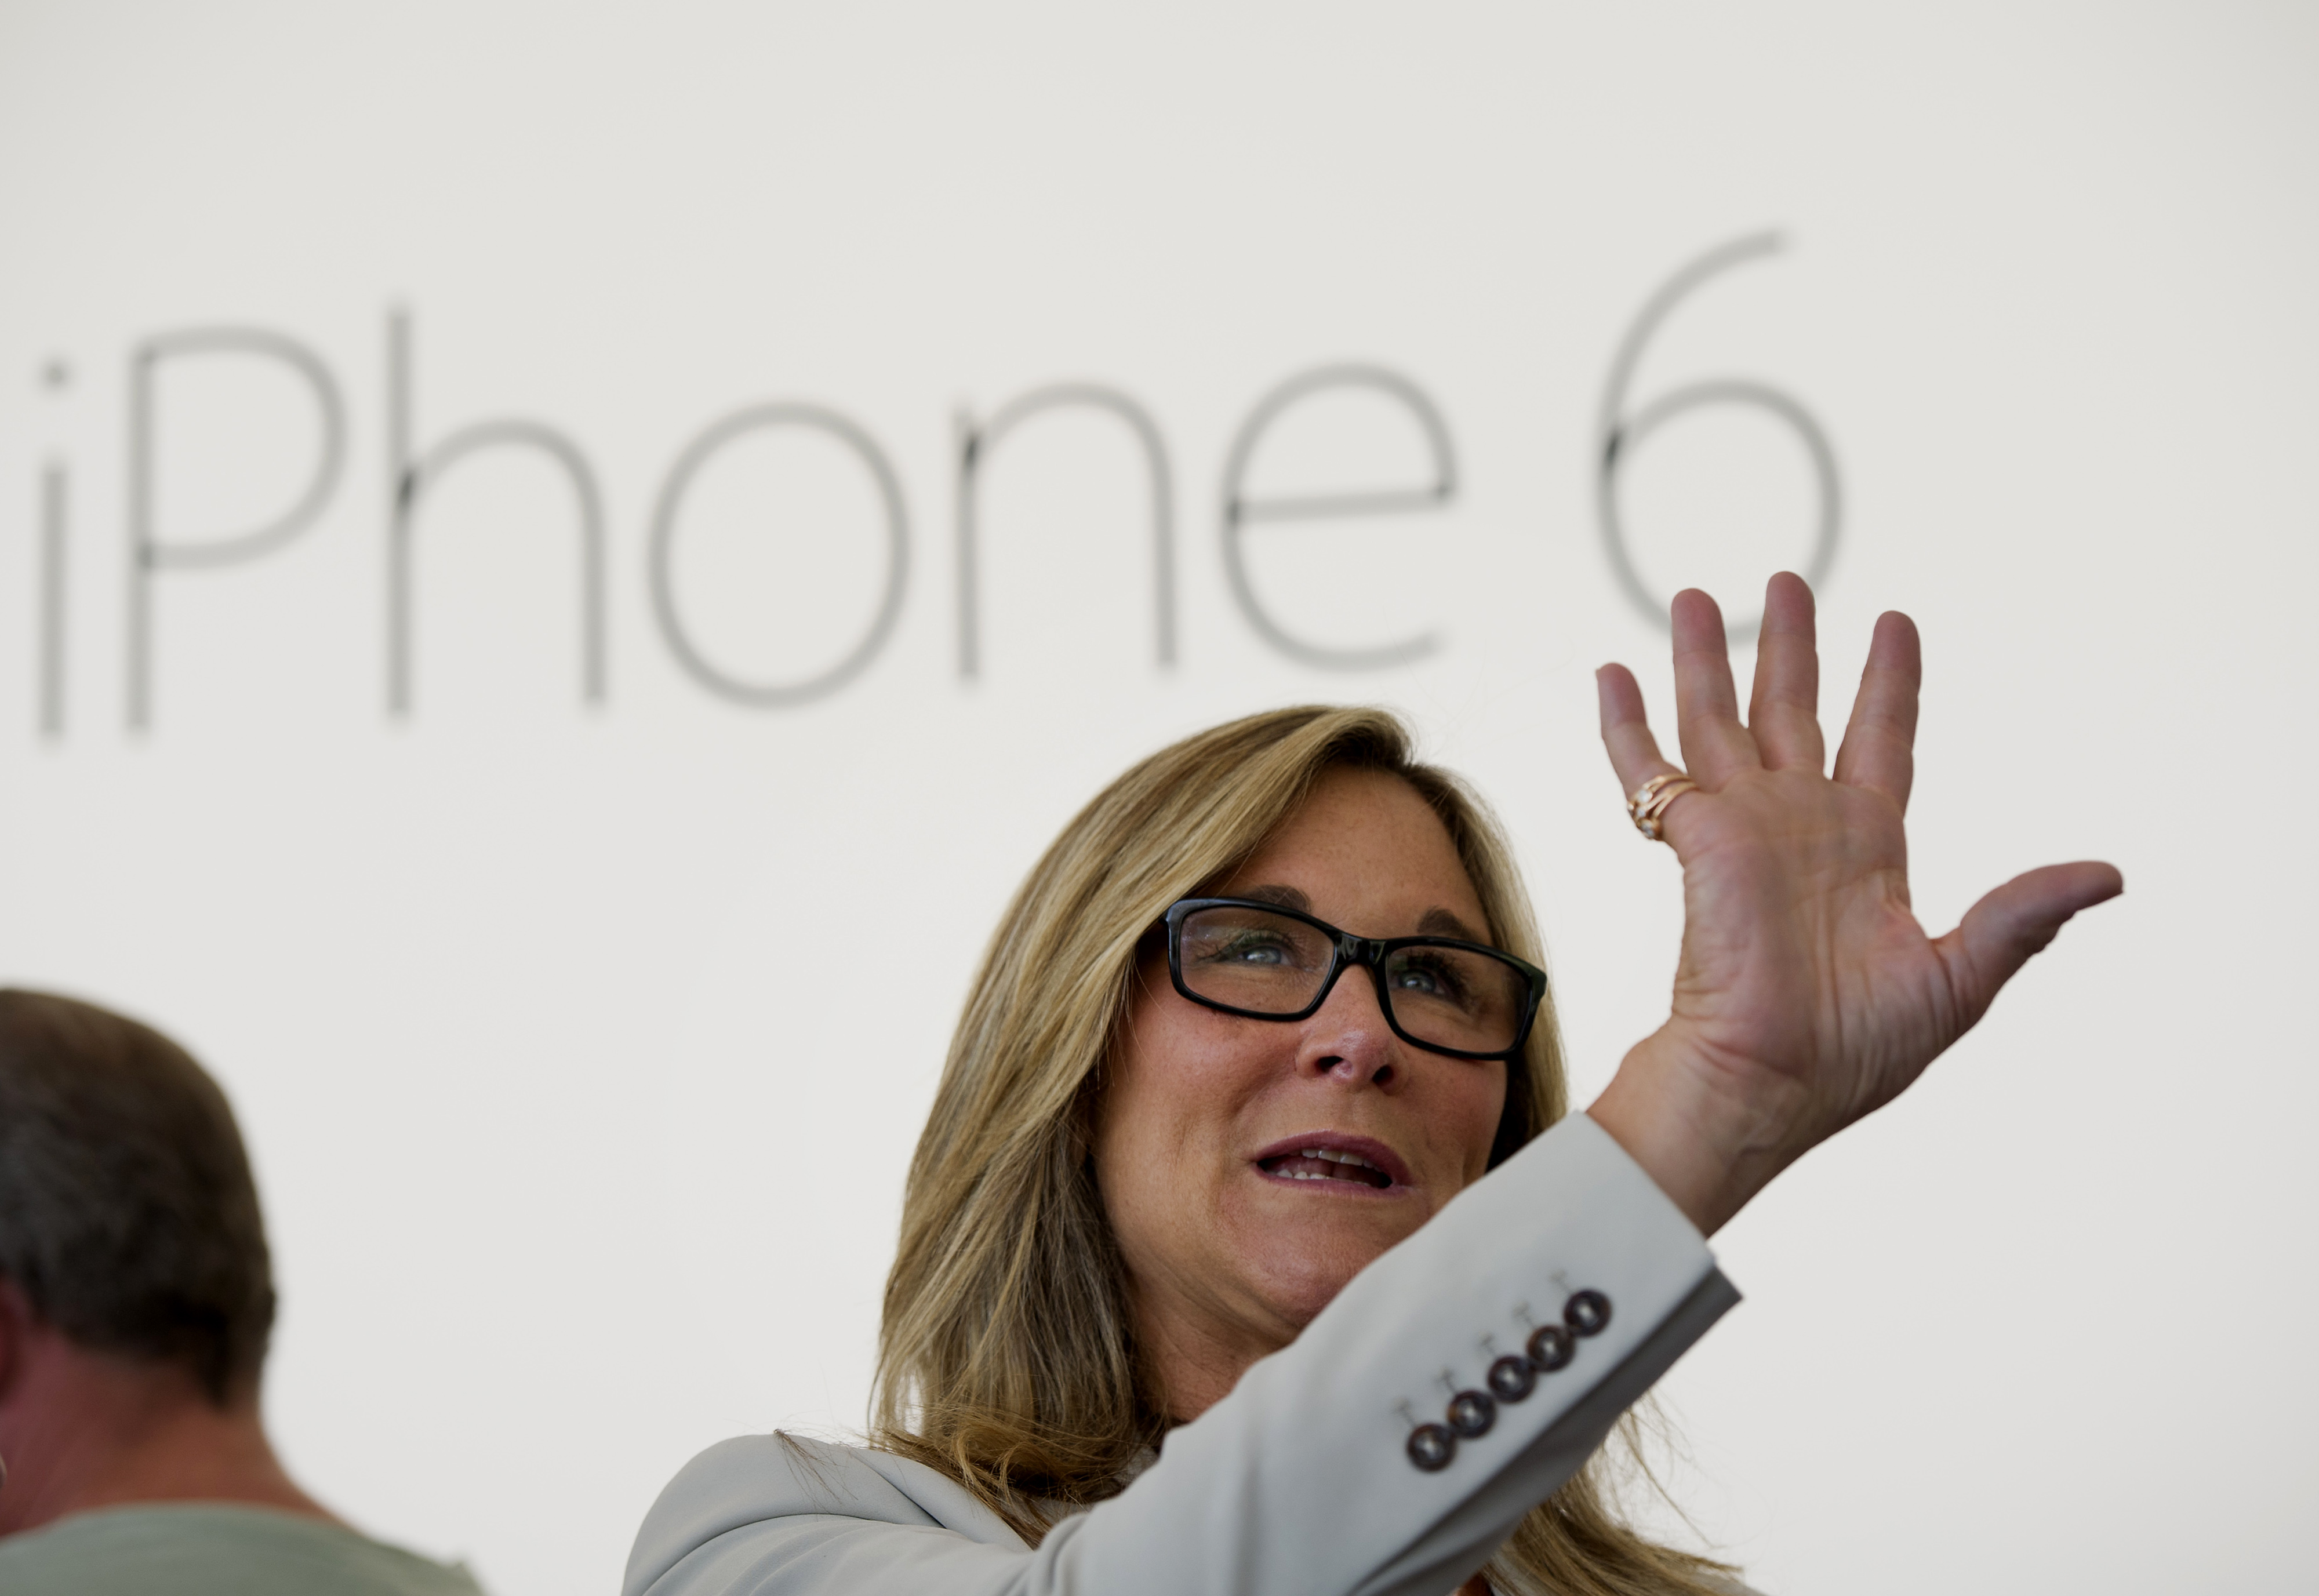 Apple's New Big-Screen iPhones Draw Long Lines As Sales Start